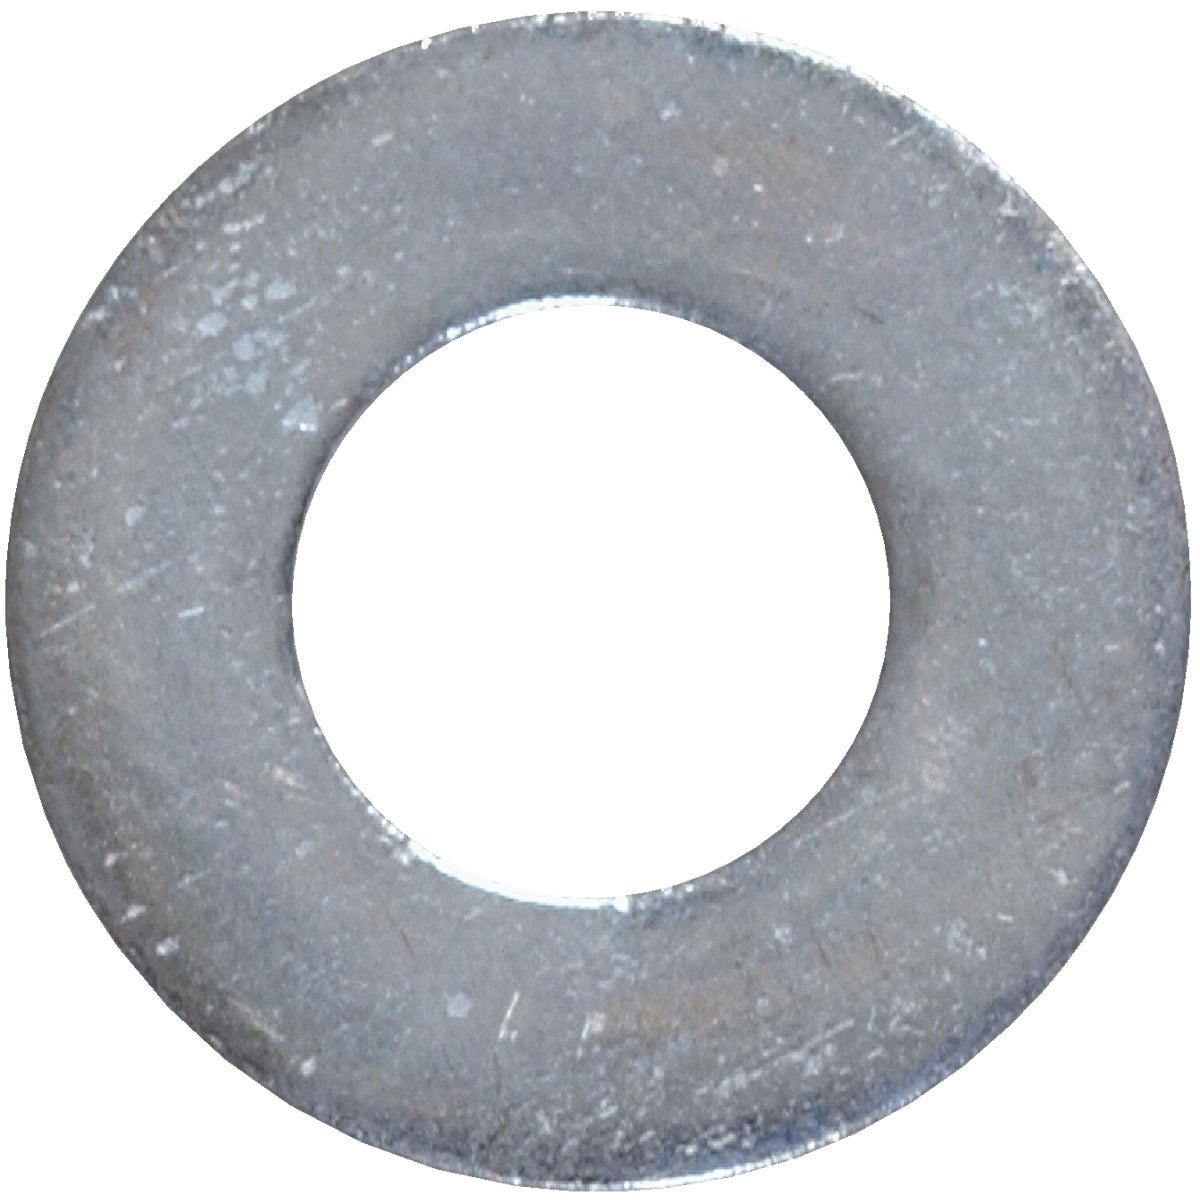 "5LB 5/16"" USS FLT WASHER - 811006 by Hillman Fastener"